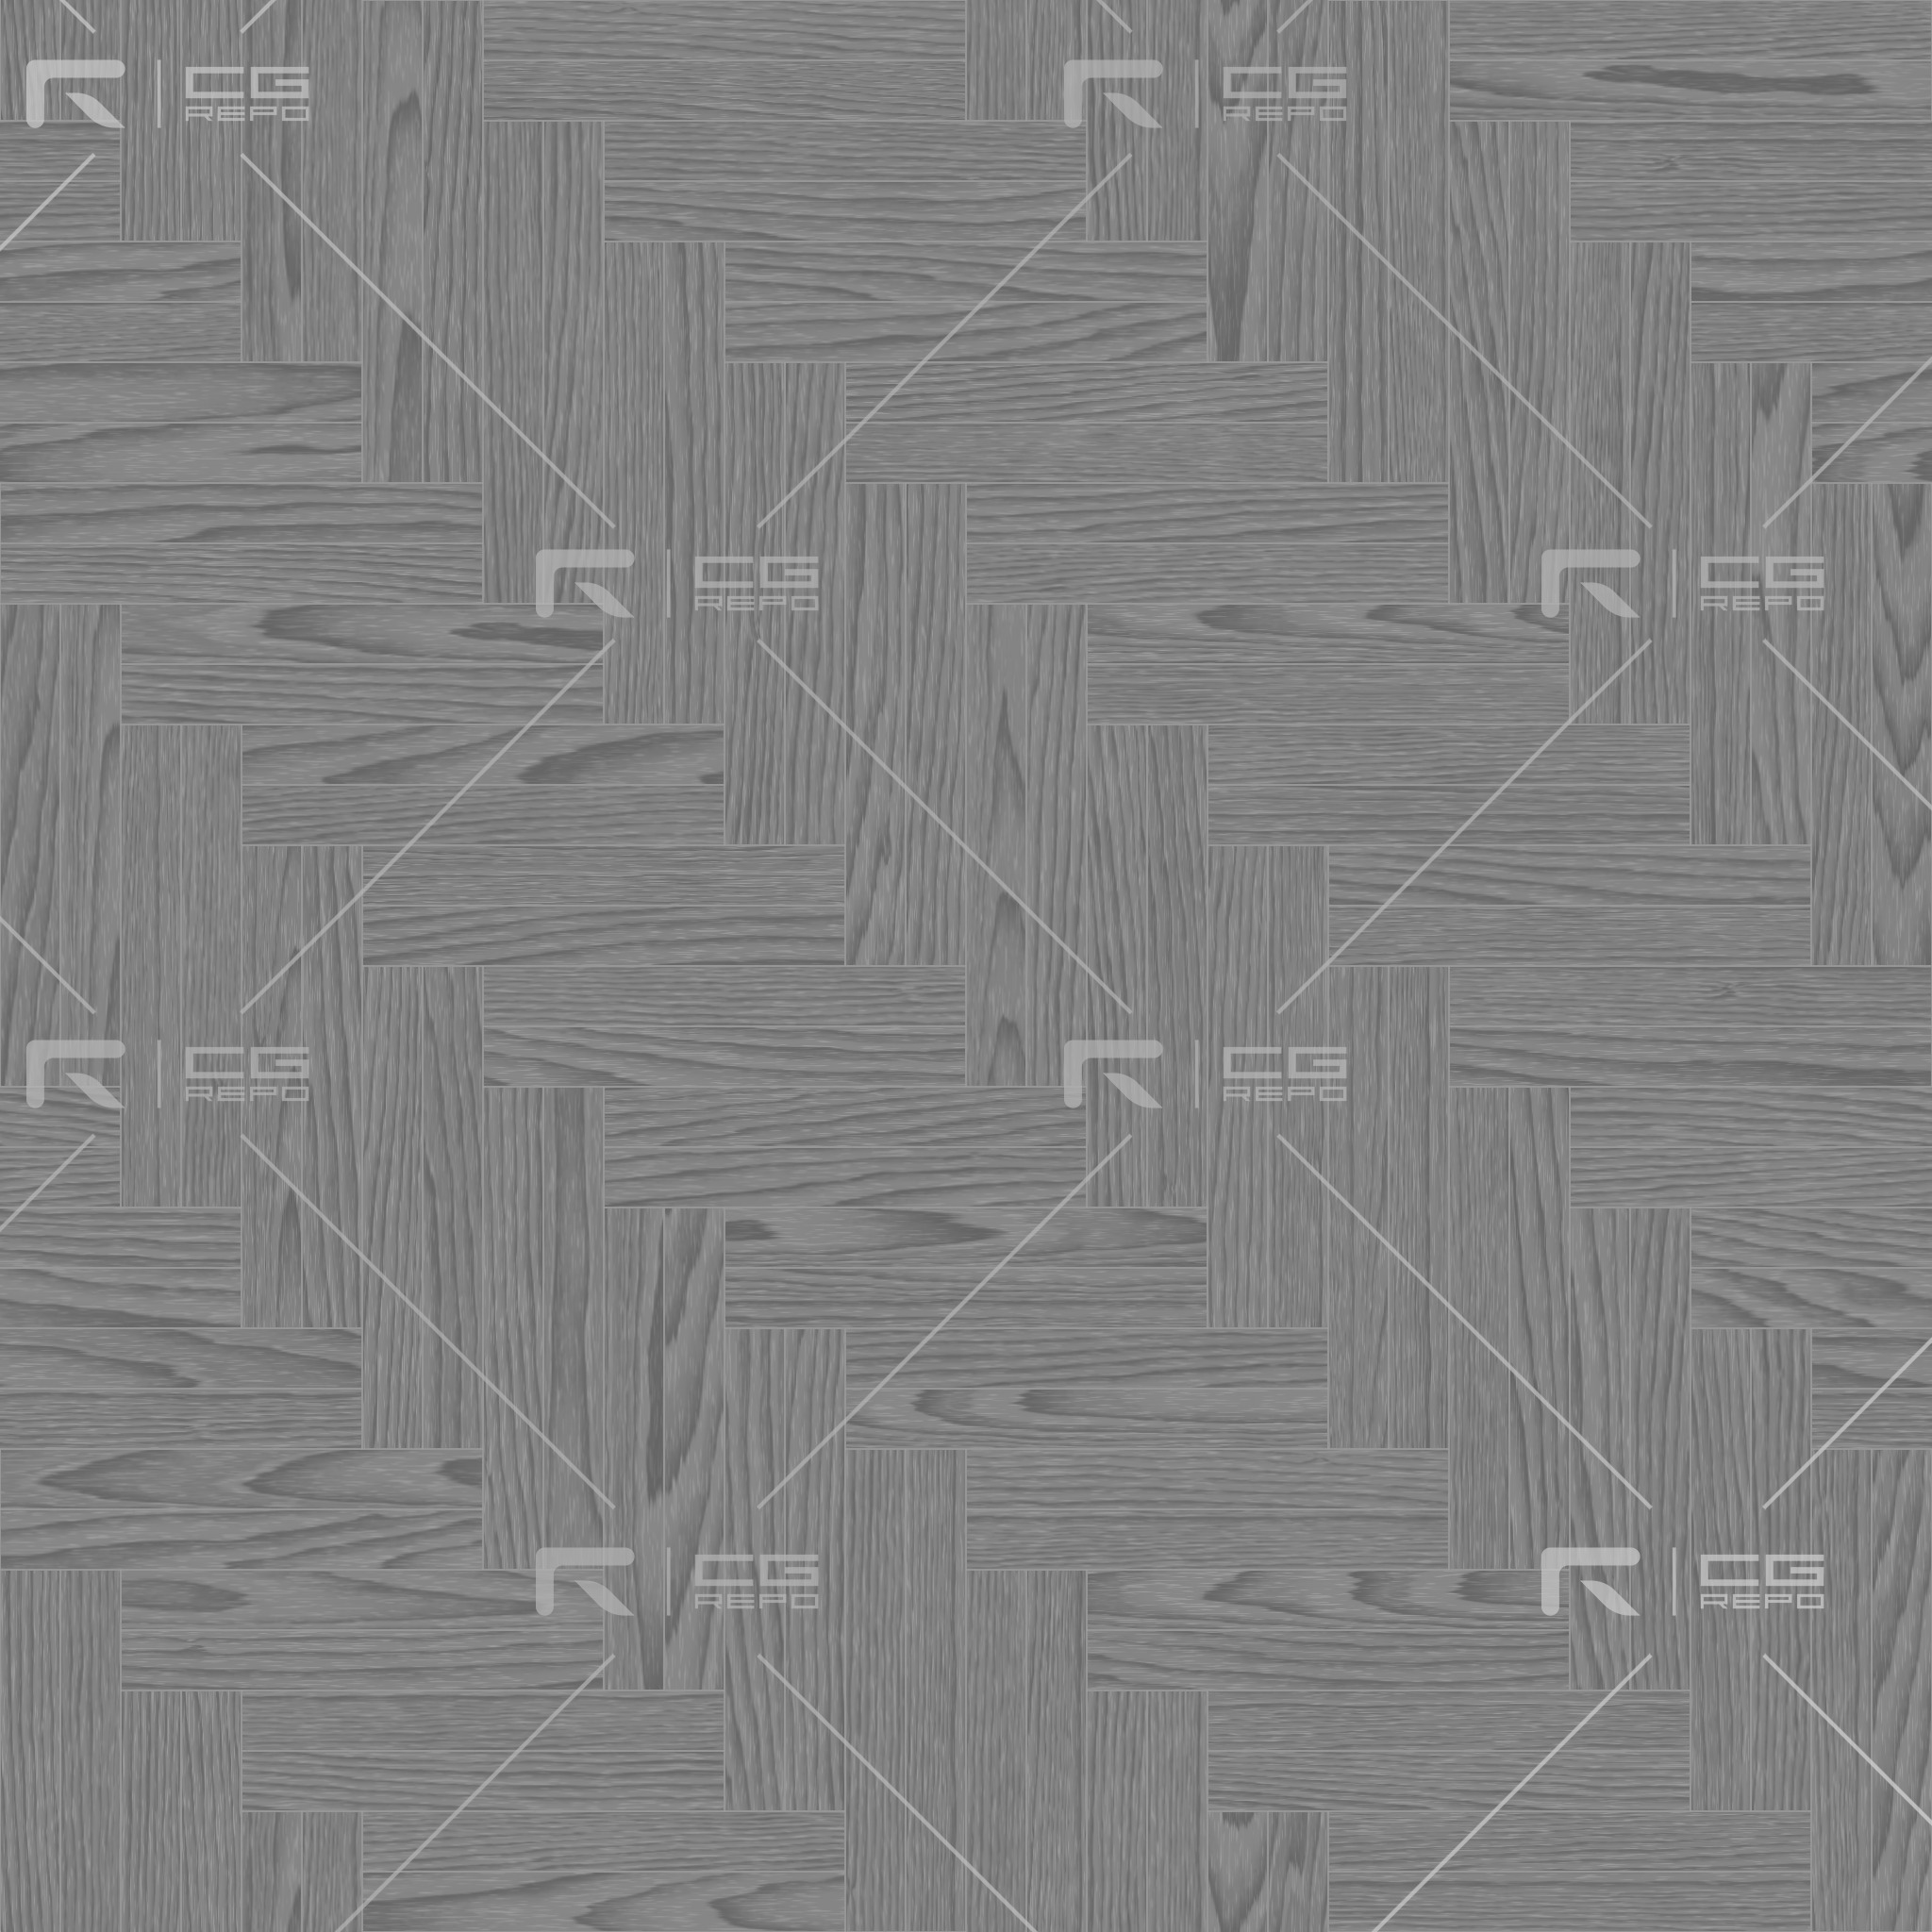 Oak European Light Ash Double Herringbone Roughness Texture